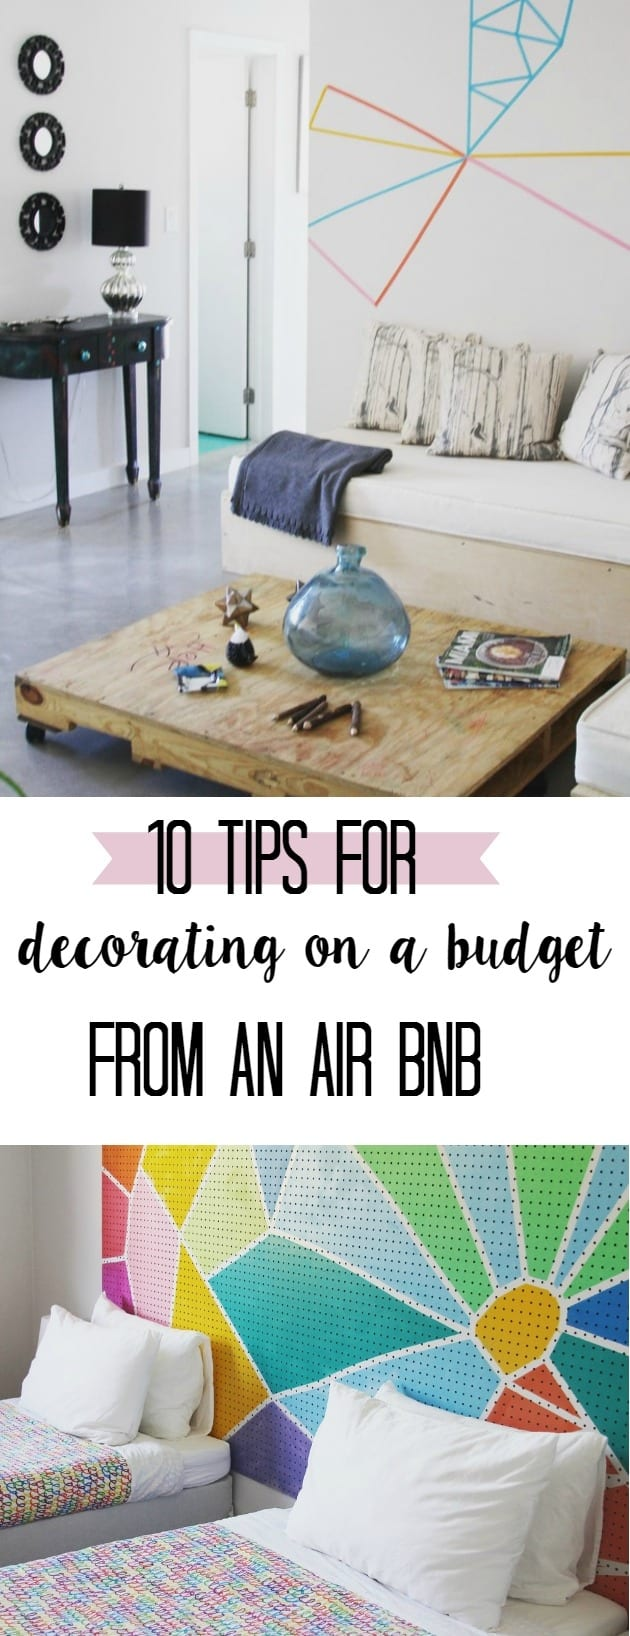 How To Decorate On A Budget Tips From An Air Bnb At Home With